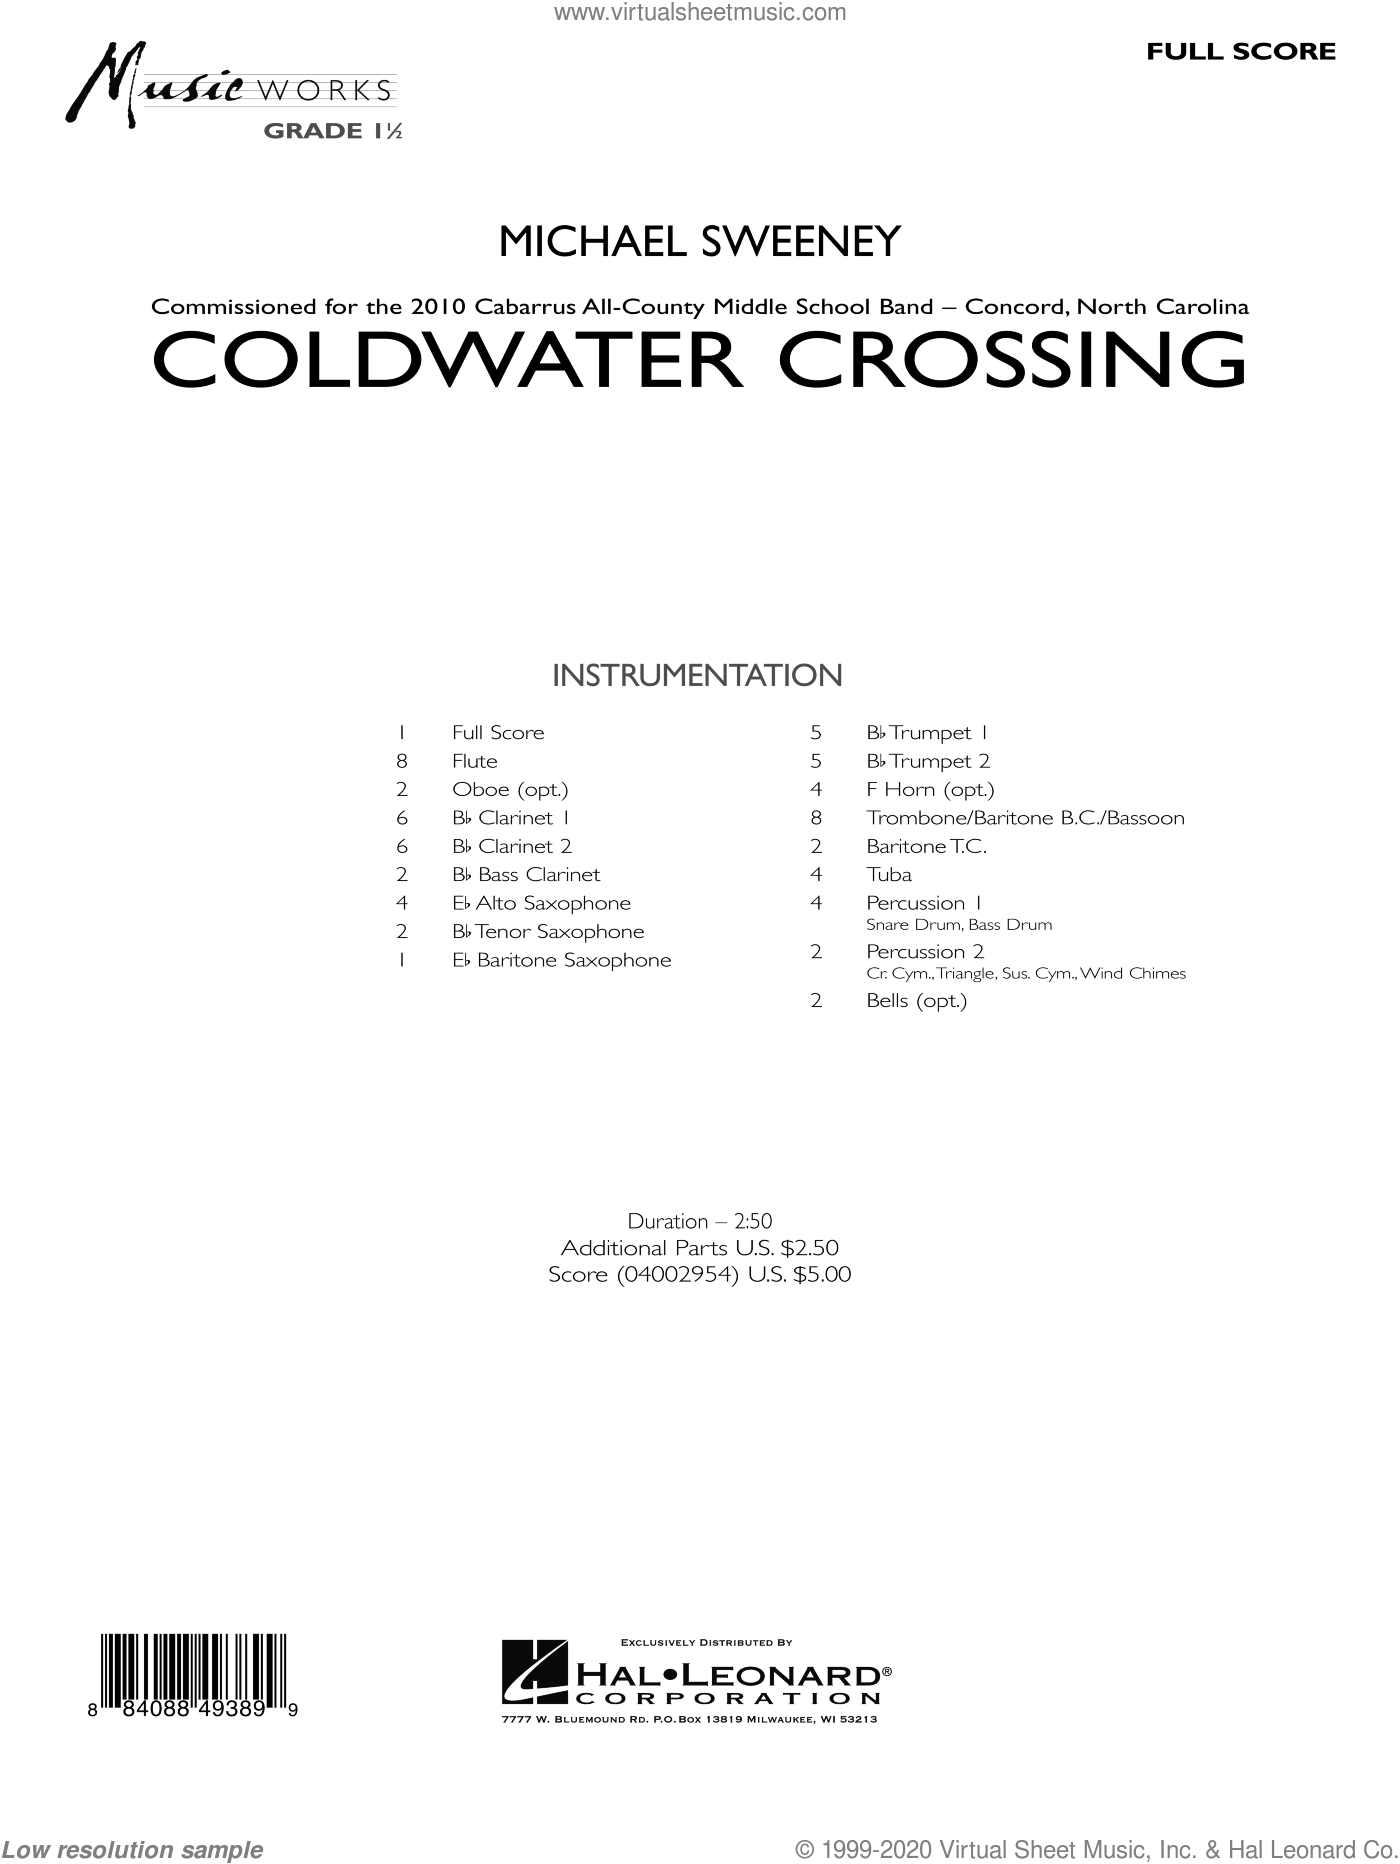 Coldwater Crossing sheet music for concert band (full score) by Michael Sweeney